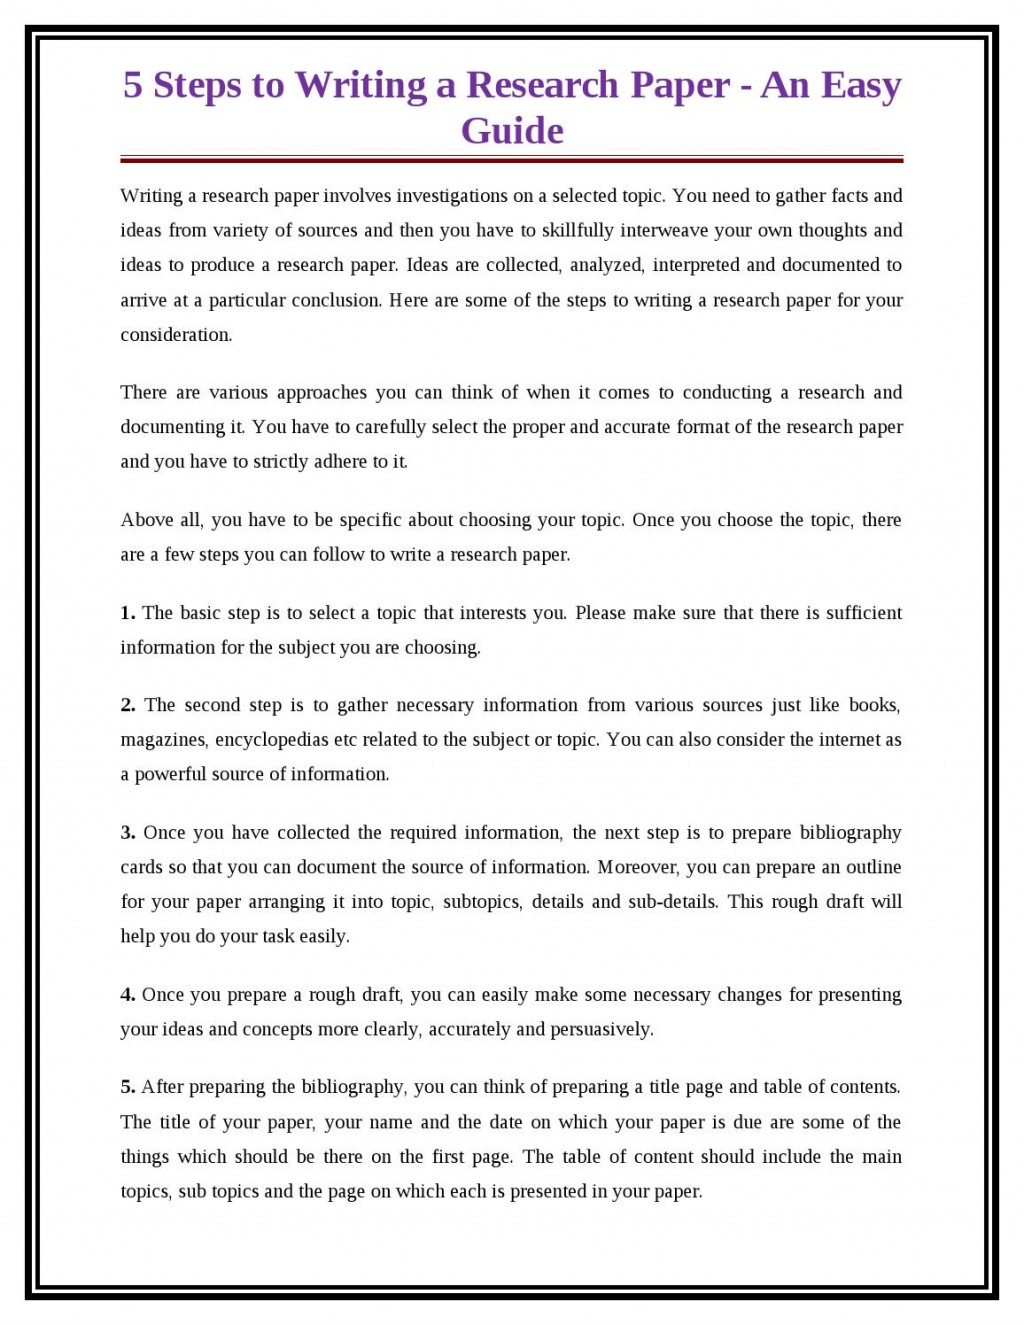 003 How To Make Research Paper Page 1 Incredible A Interesting Thesis Flow Large